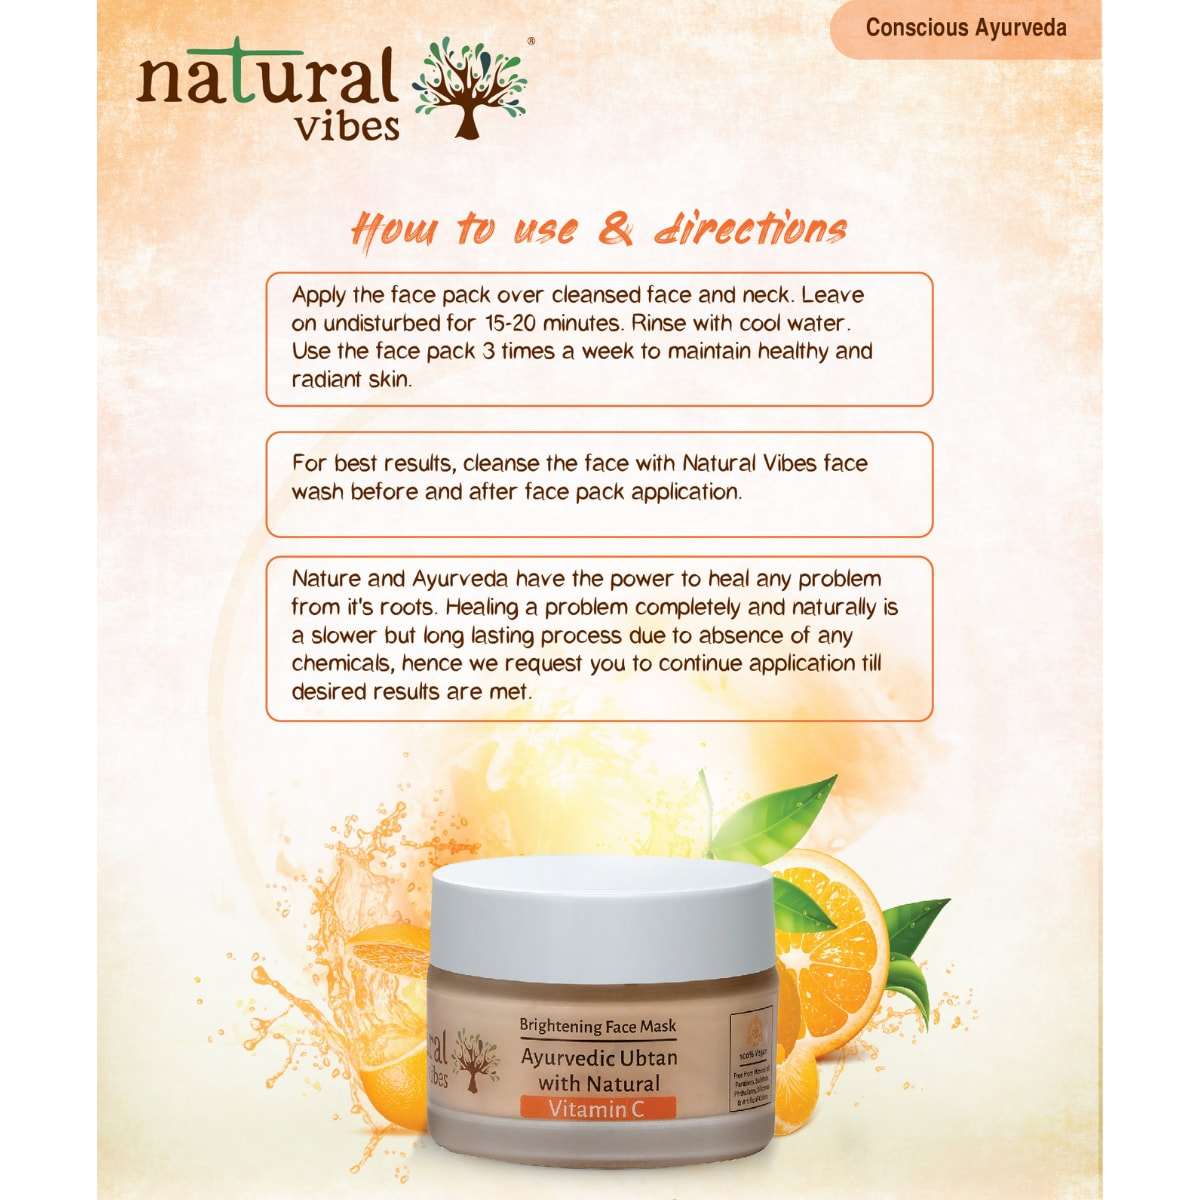 Natural Vibes Ayurvedic Vitamin C Brightening Face Mask/Pack (50 gms)